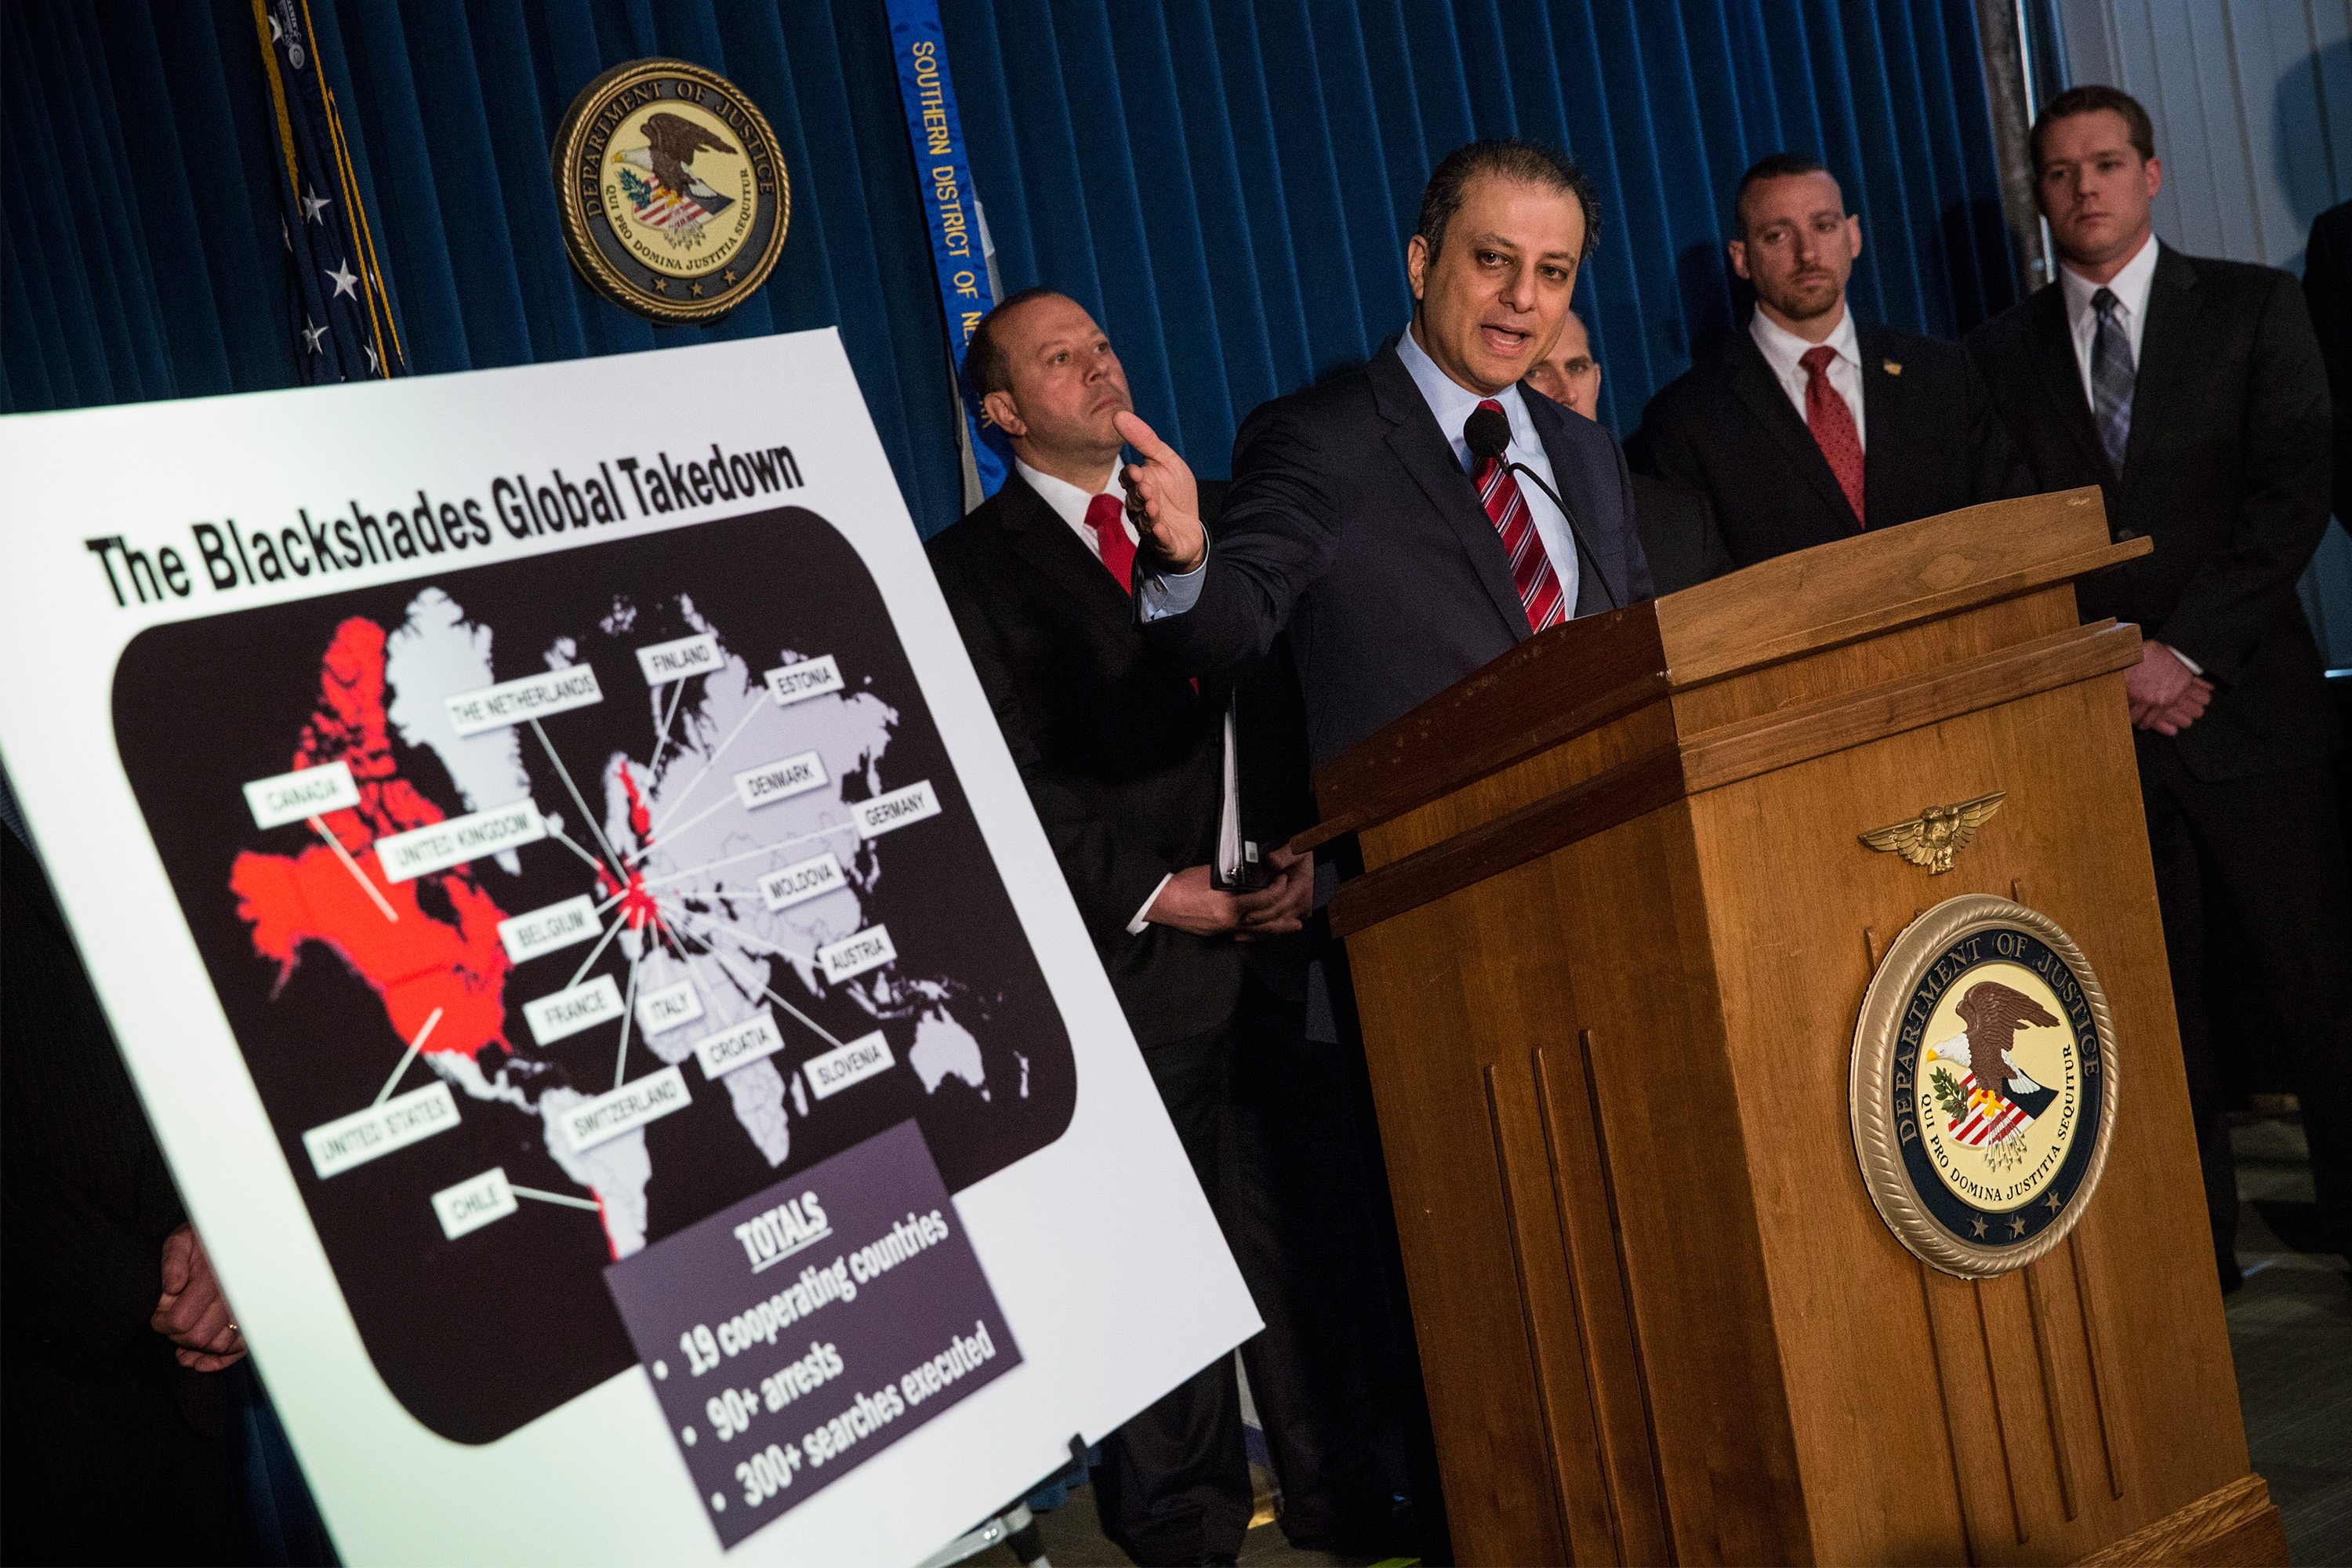 Preet Bharara, U.S. Attorney for the Southern District of New York, announces a massive law enforcement action targeting the creators of the Blackshades software - a malicious computer software that was openly sold on a website- on May 19, 2014 in New York City.